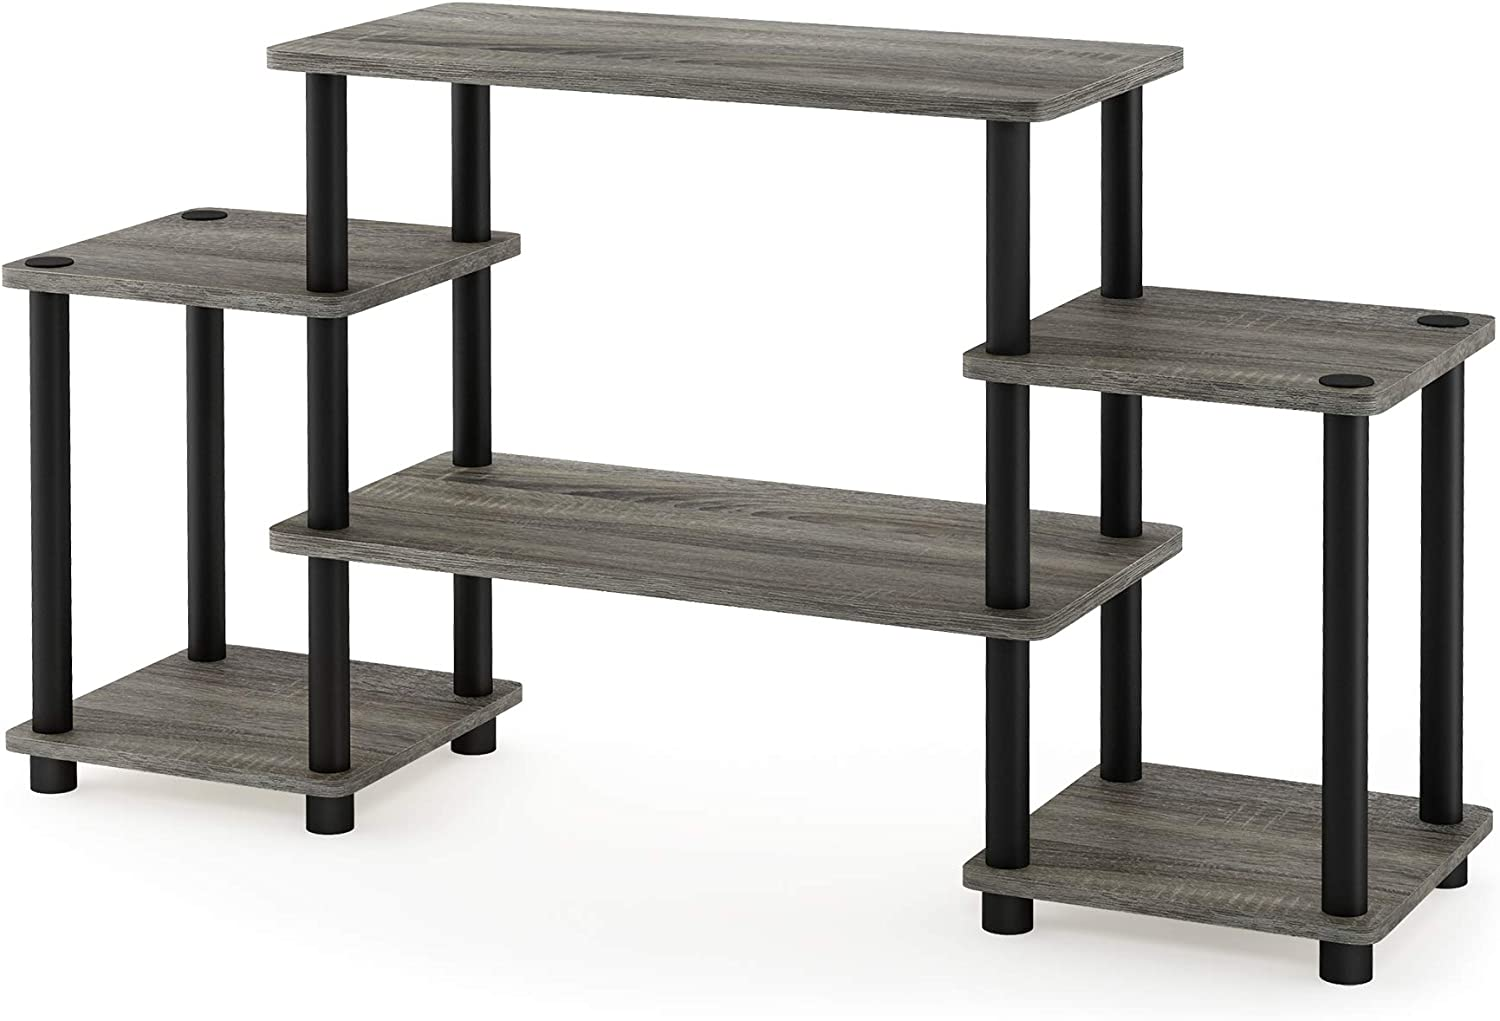 Furinno Turn-N-Tube No Tools Entertainment Center French Oak Grey//Black Round Square Corner